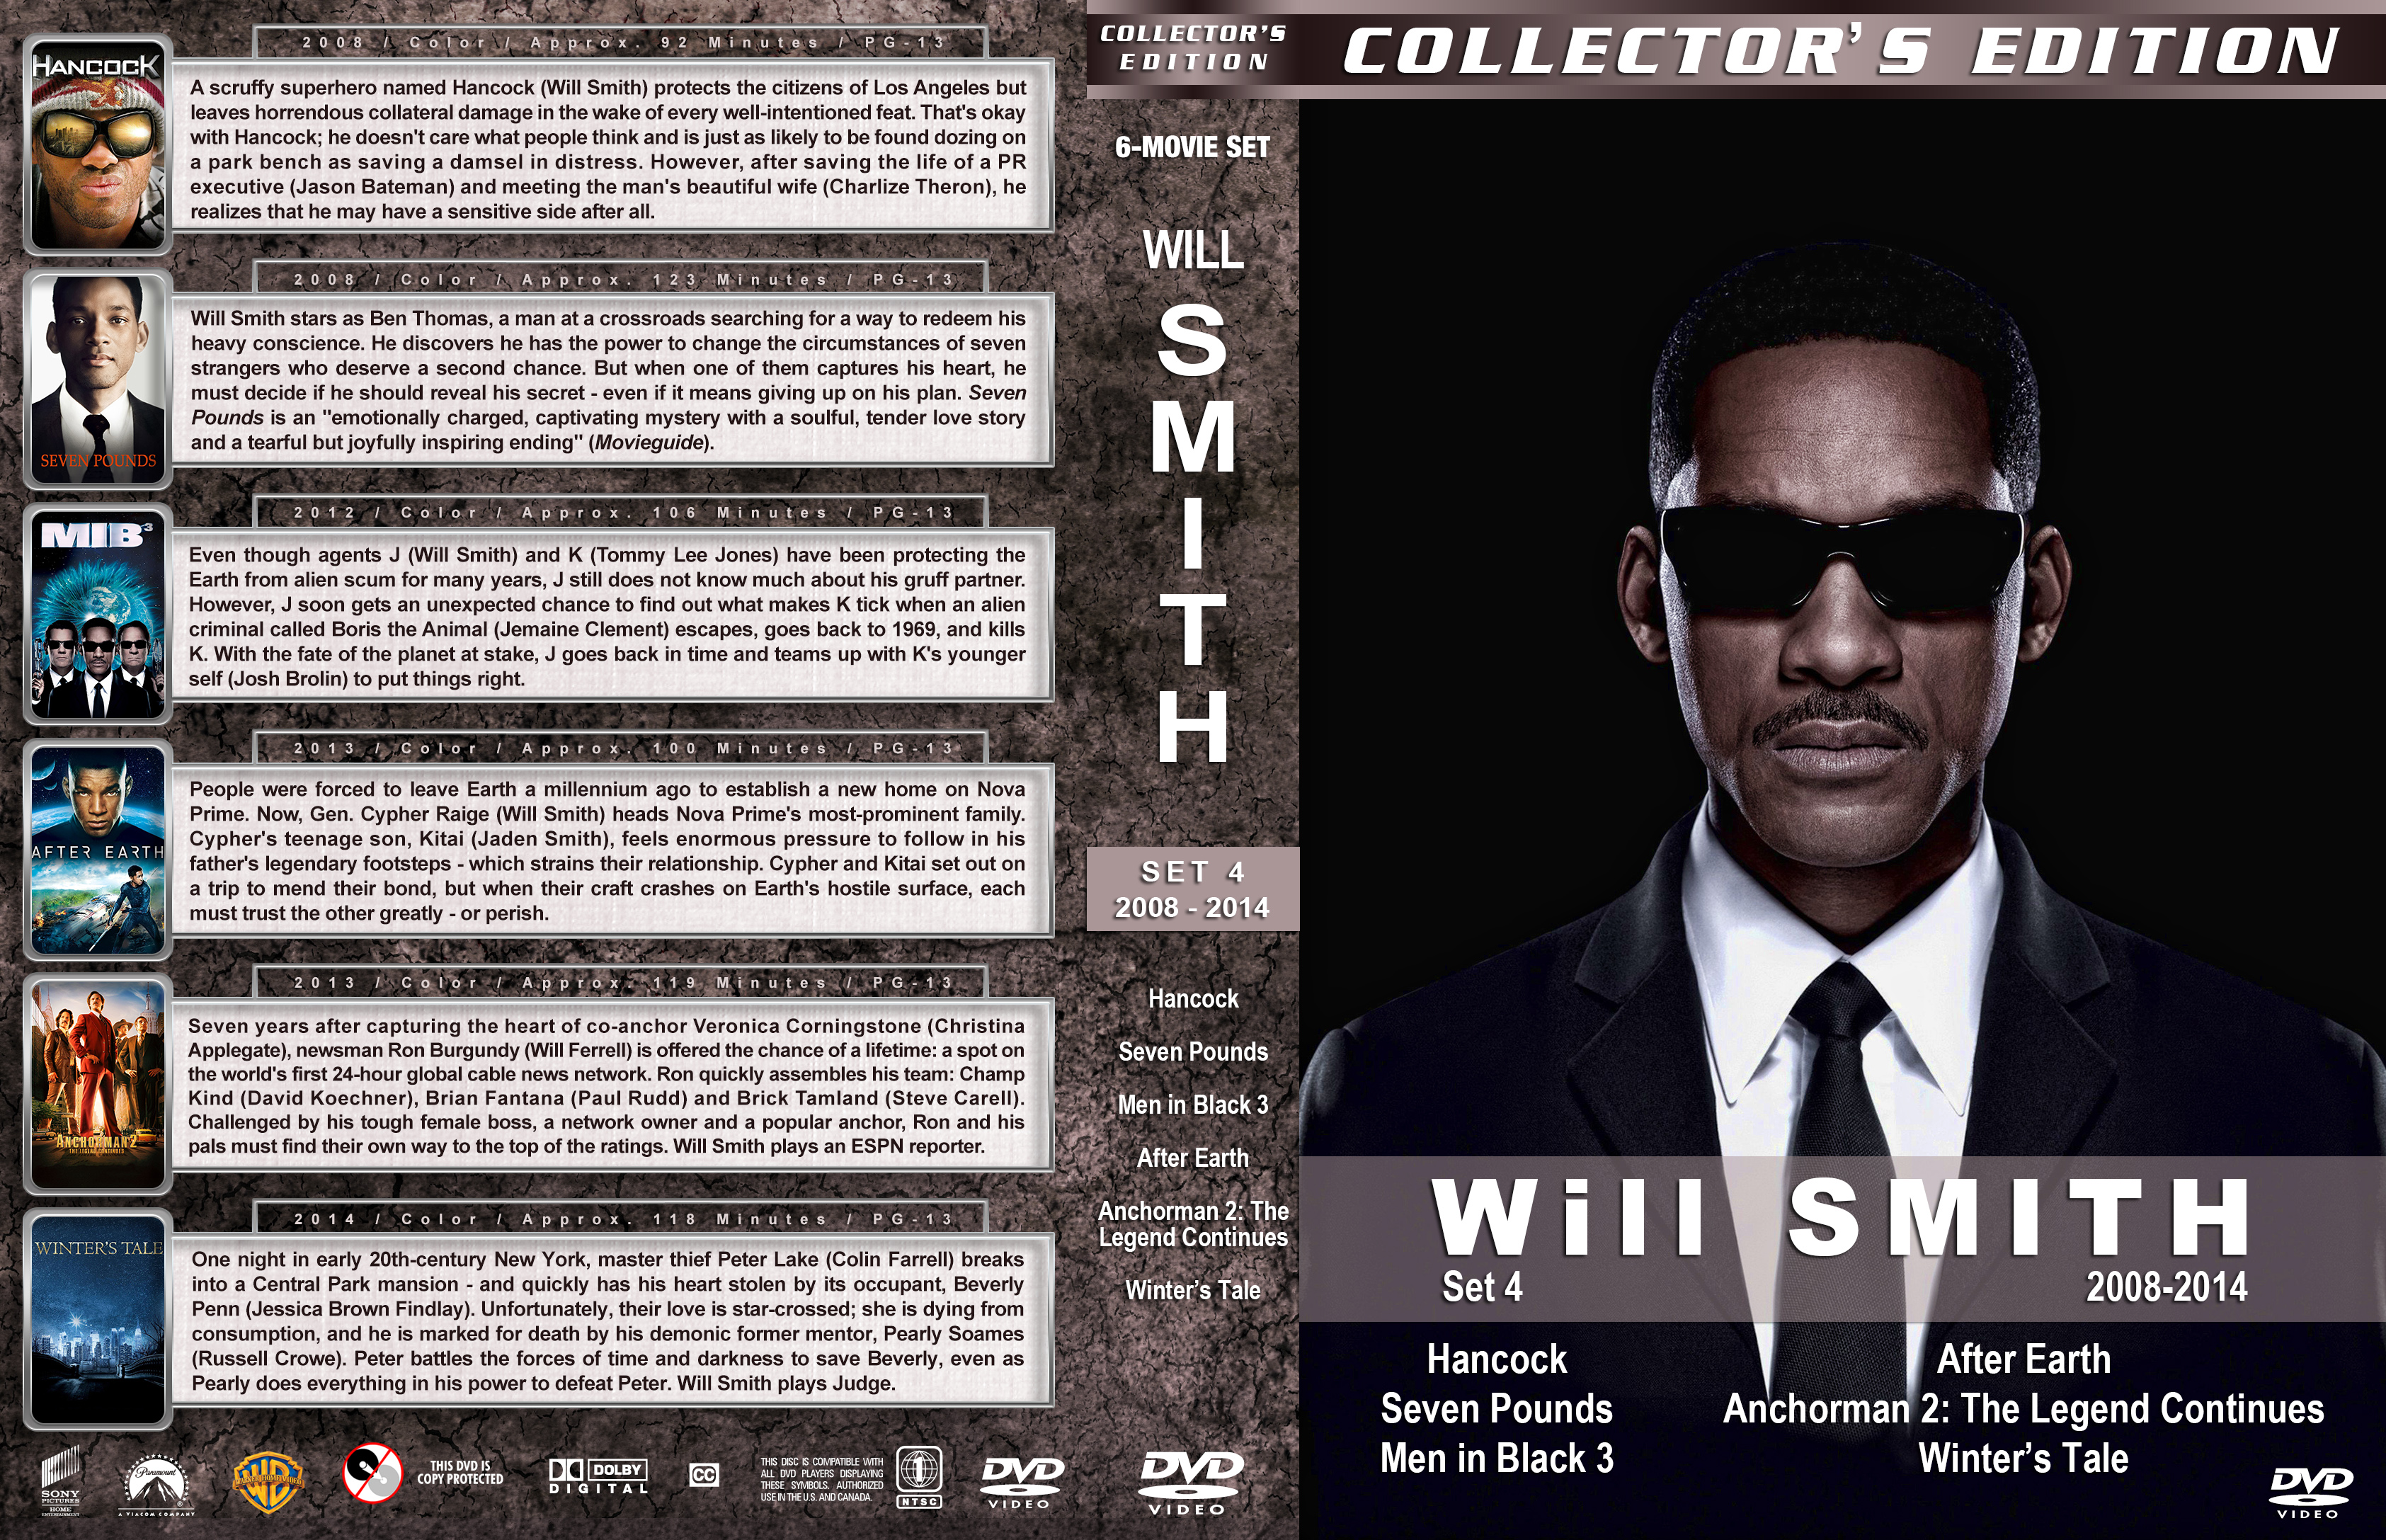 will smith collectors edition set 4 20082014 dvd cover